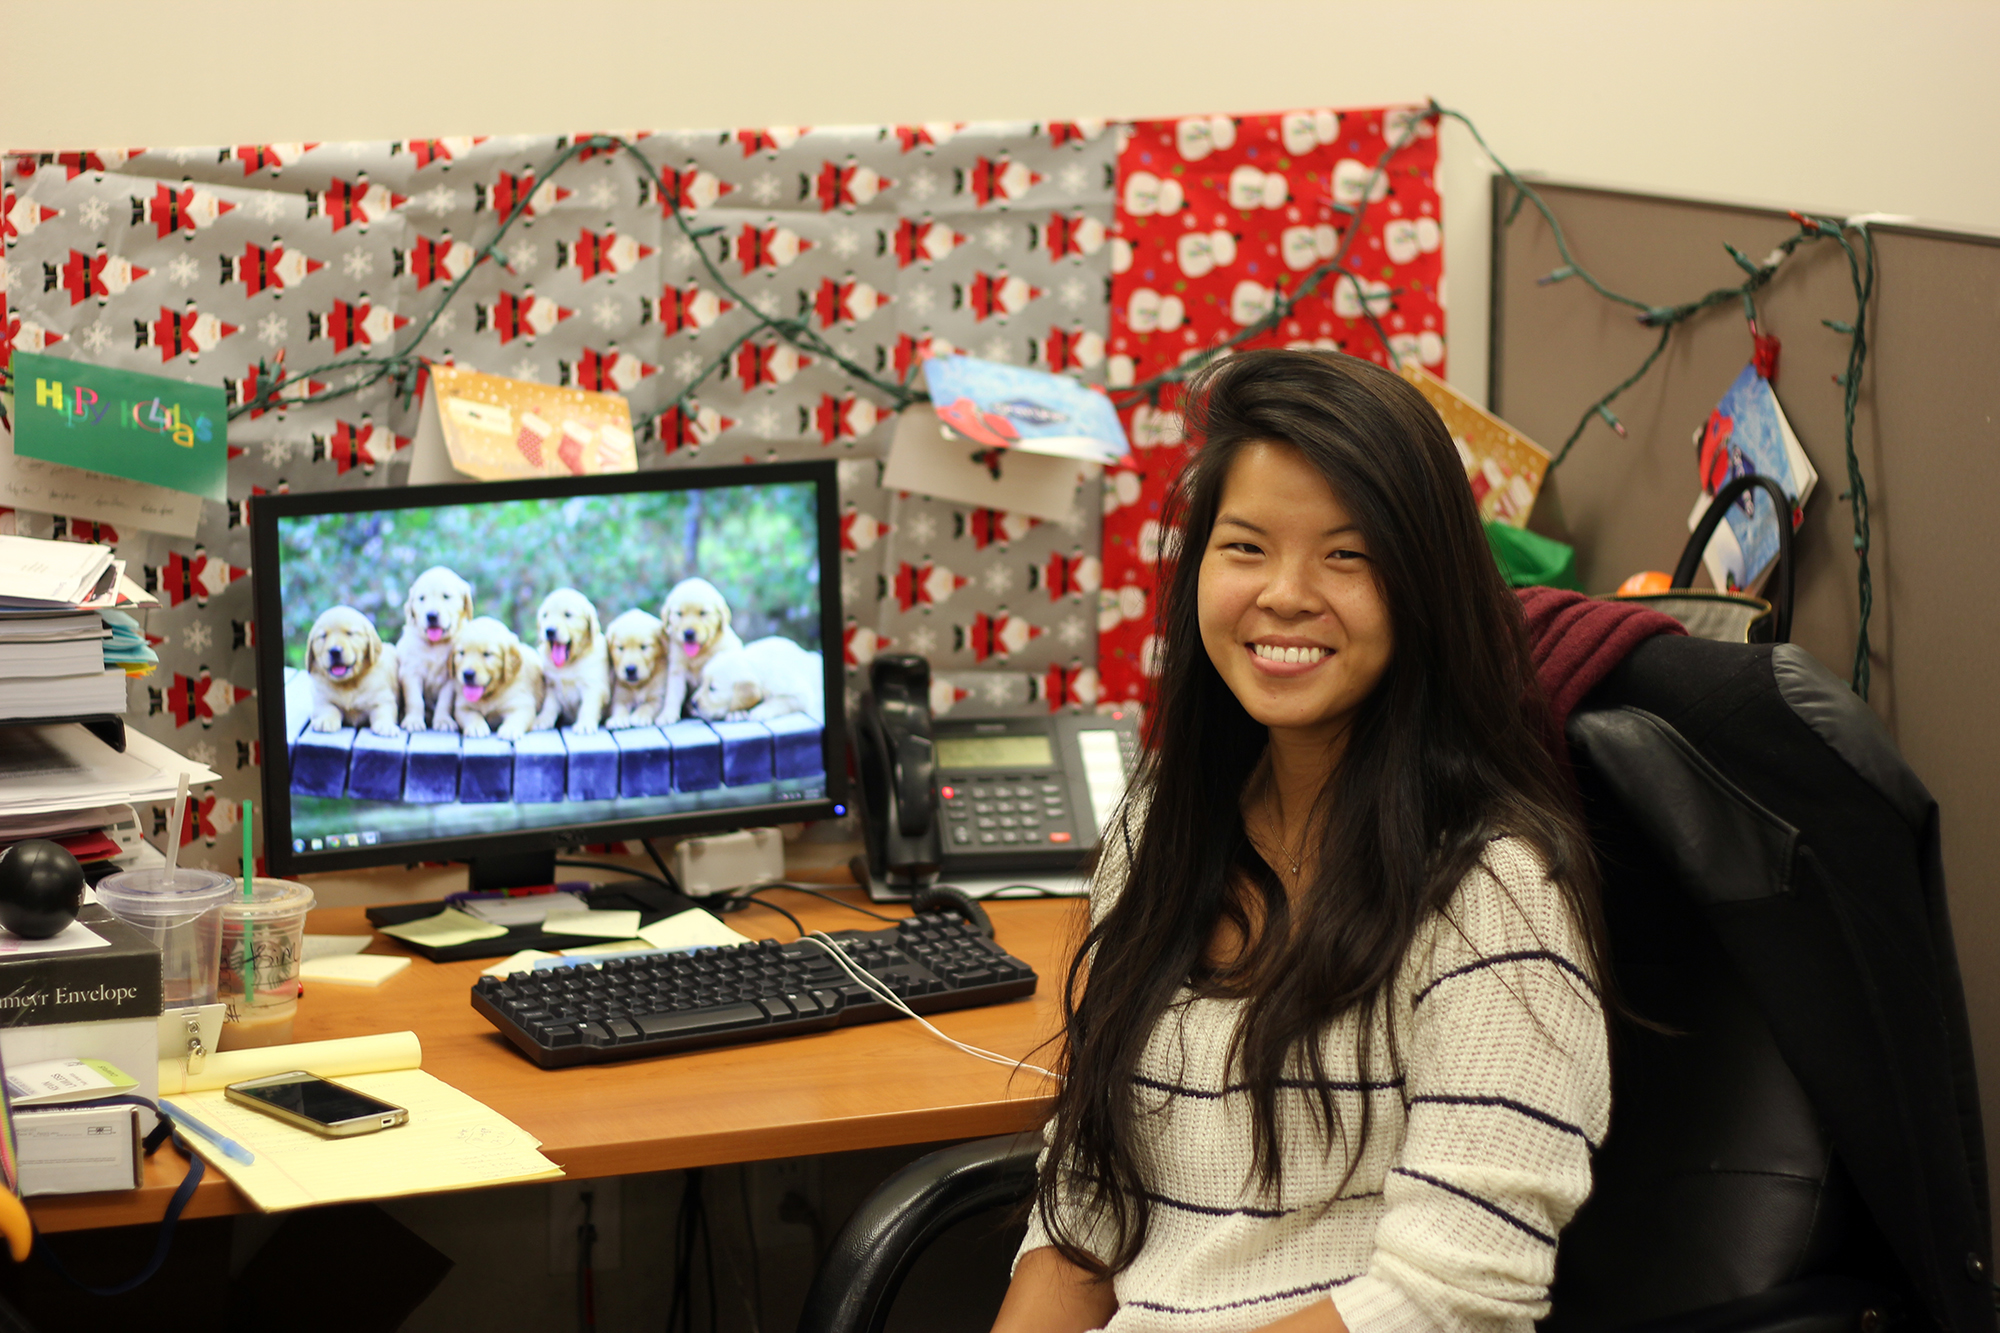 Christmas Decorations Office Kims Despite Nearly Being Her Desk Proudly Decked Out Bringing